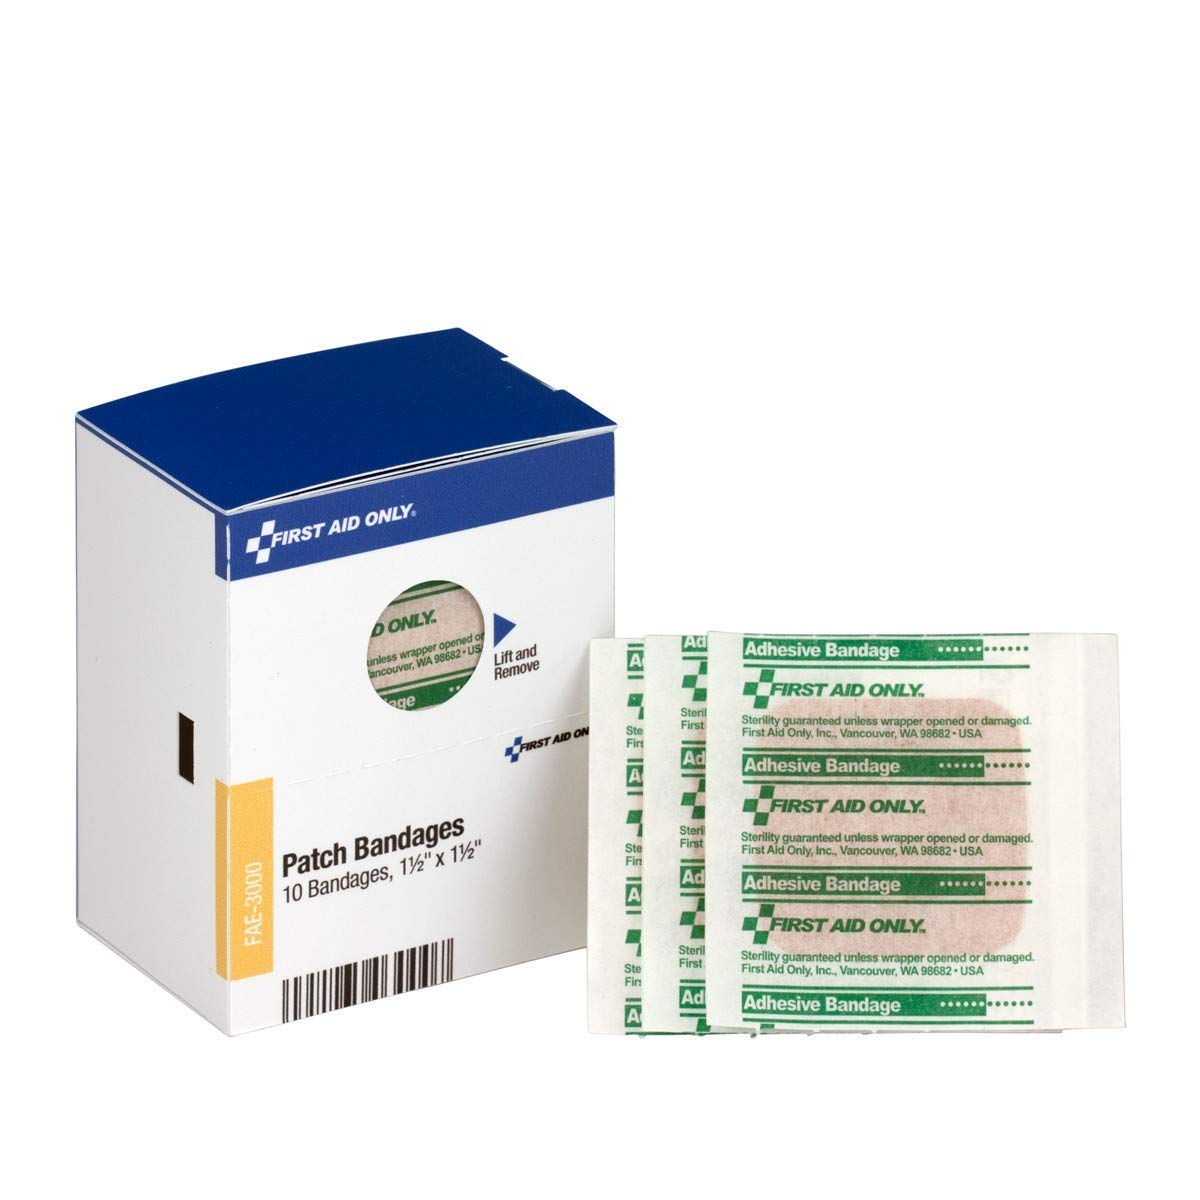 SmartCompliance Refill 1 1/2' X 1 1/2' Patch Plastic Bandages, 10 Per Box | Emergency Kit Trauma Kits First Aid Cabinet Refills Brite Safety BS-FAK-FAE-3000-1-FM